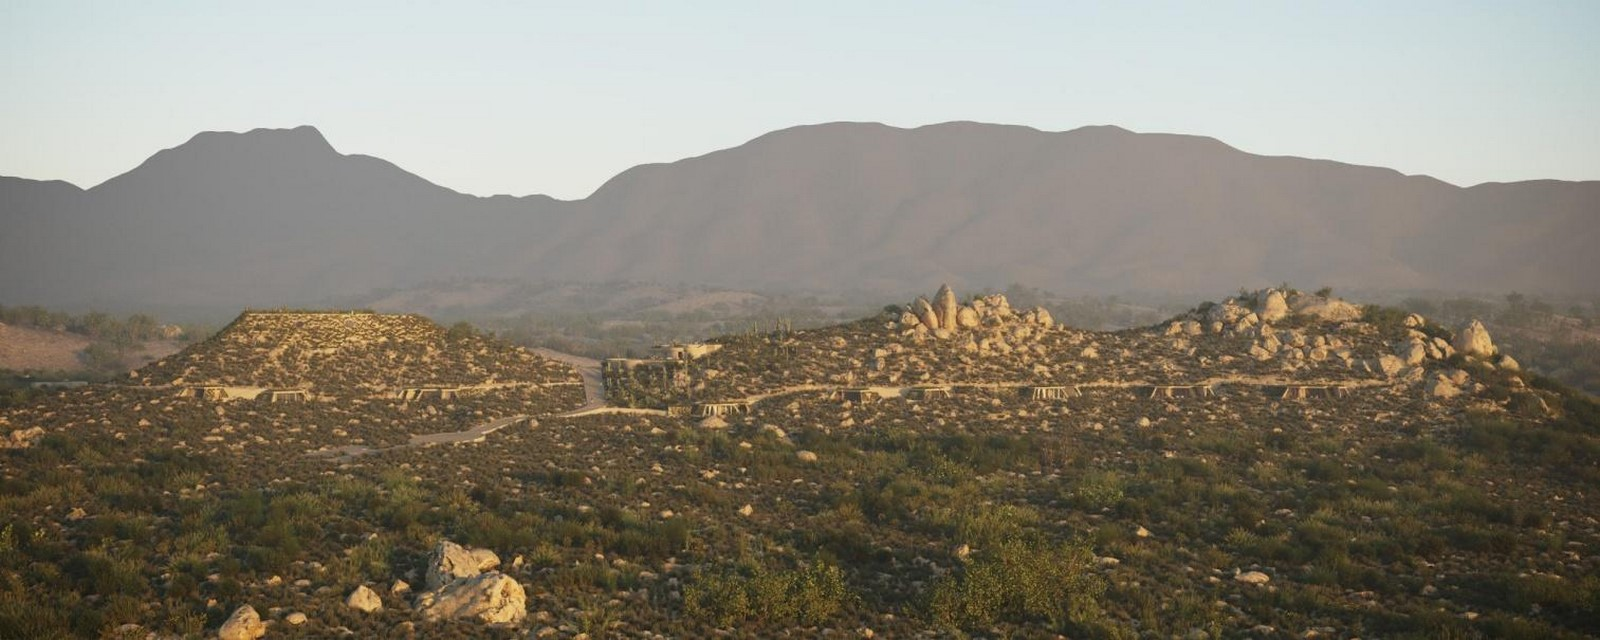 Ummara resort with 28 villas embedded in Mexican hills unveiled by Rojkind Arquitectos - Sheet2